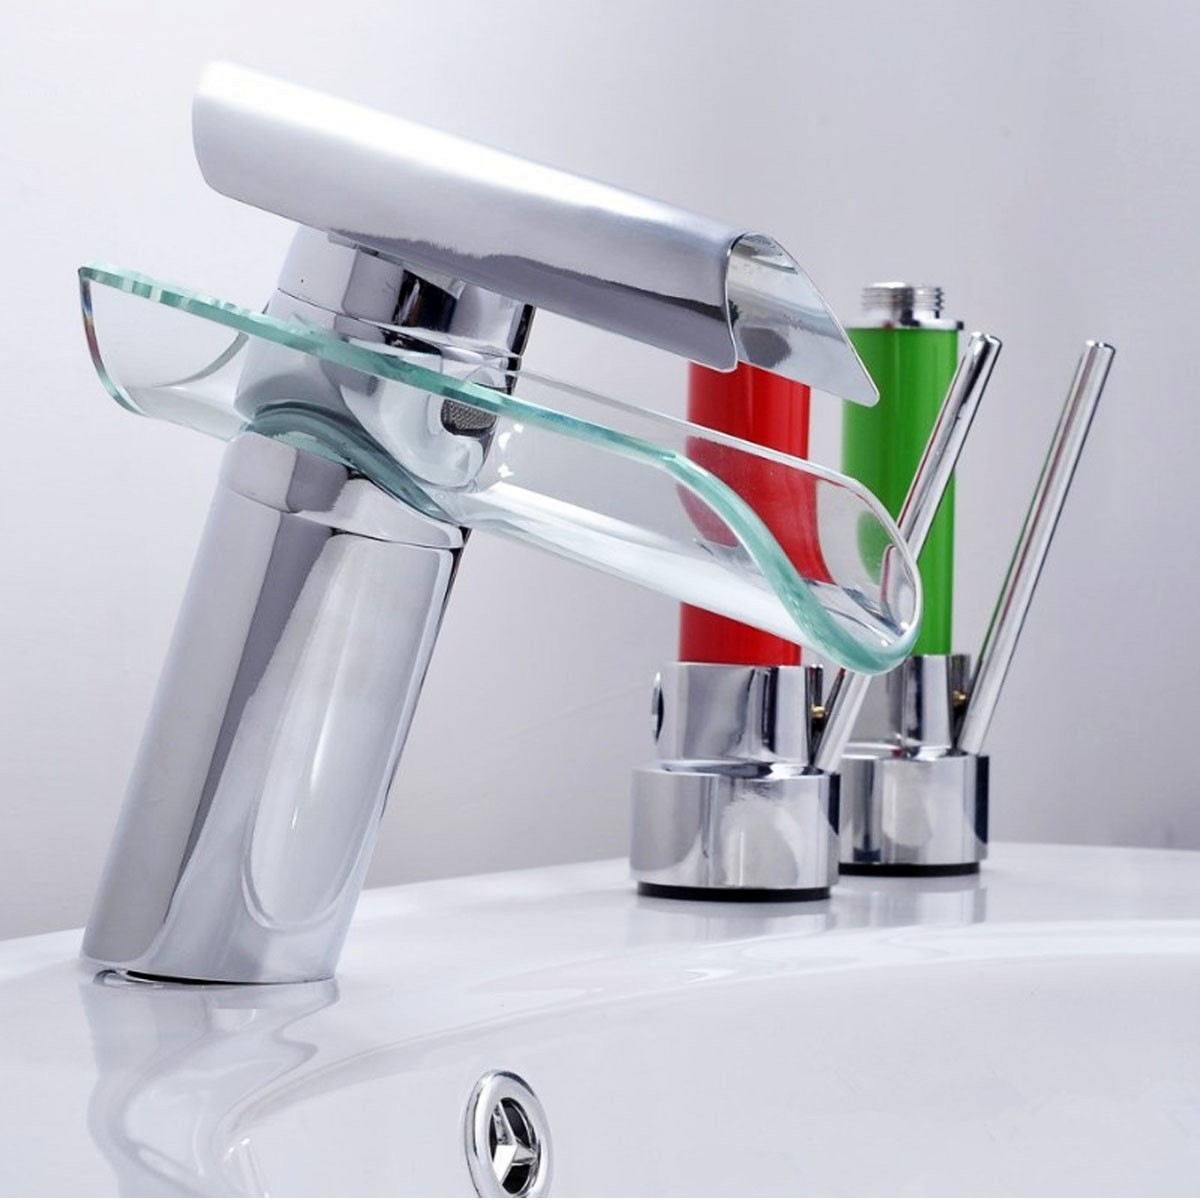 Bathroom Faucet Advanced Modern Glass Waterfall contemporary Chrome Brass Bathroom basin Faucets sink Mixer waterfall Tap панель боковая cersanit virgo intro 75 белая p pb virgo 75n p pb virgo 75